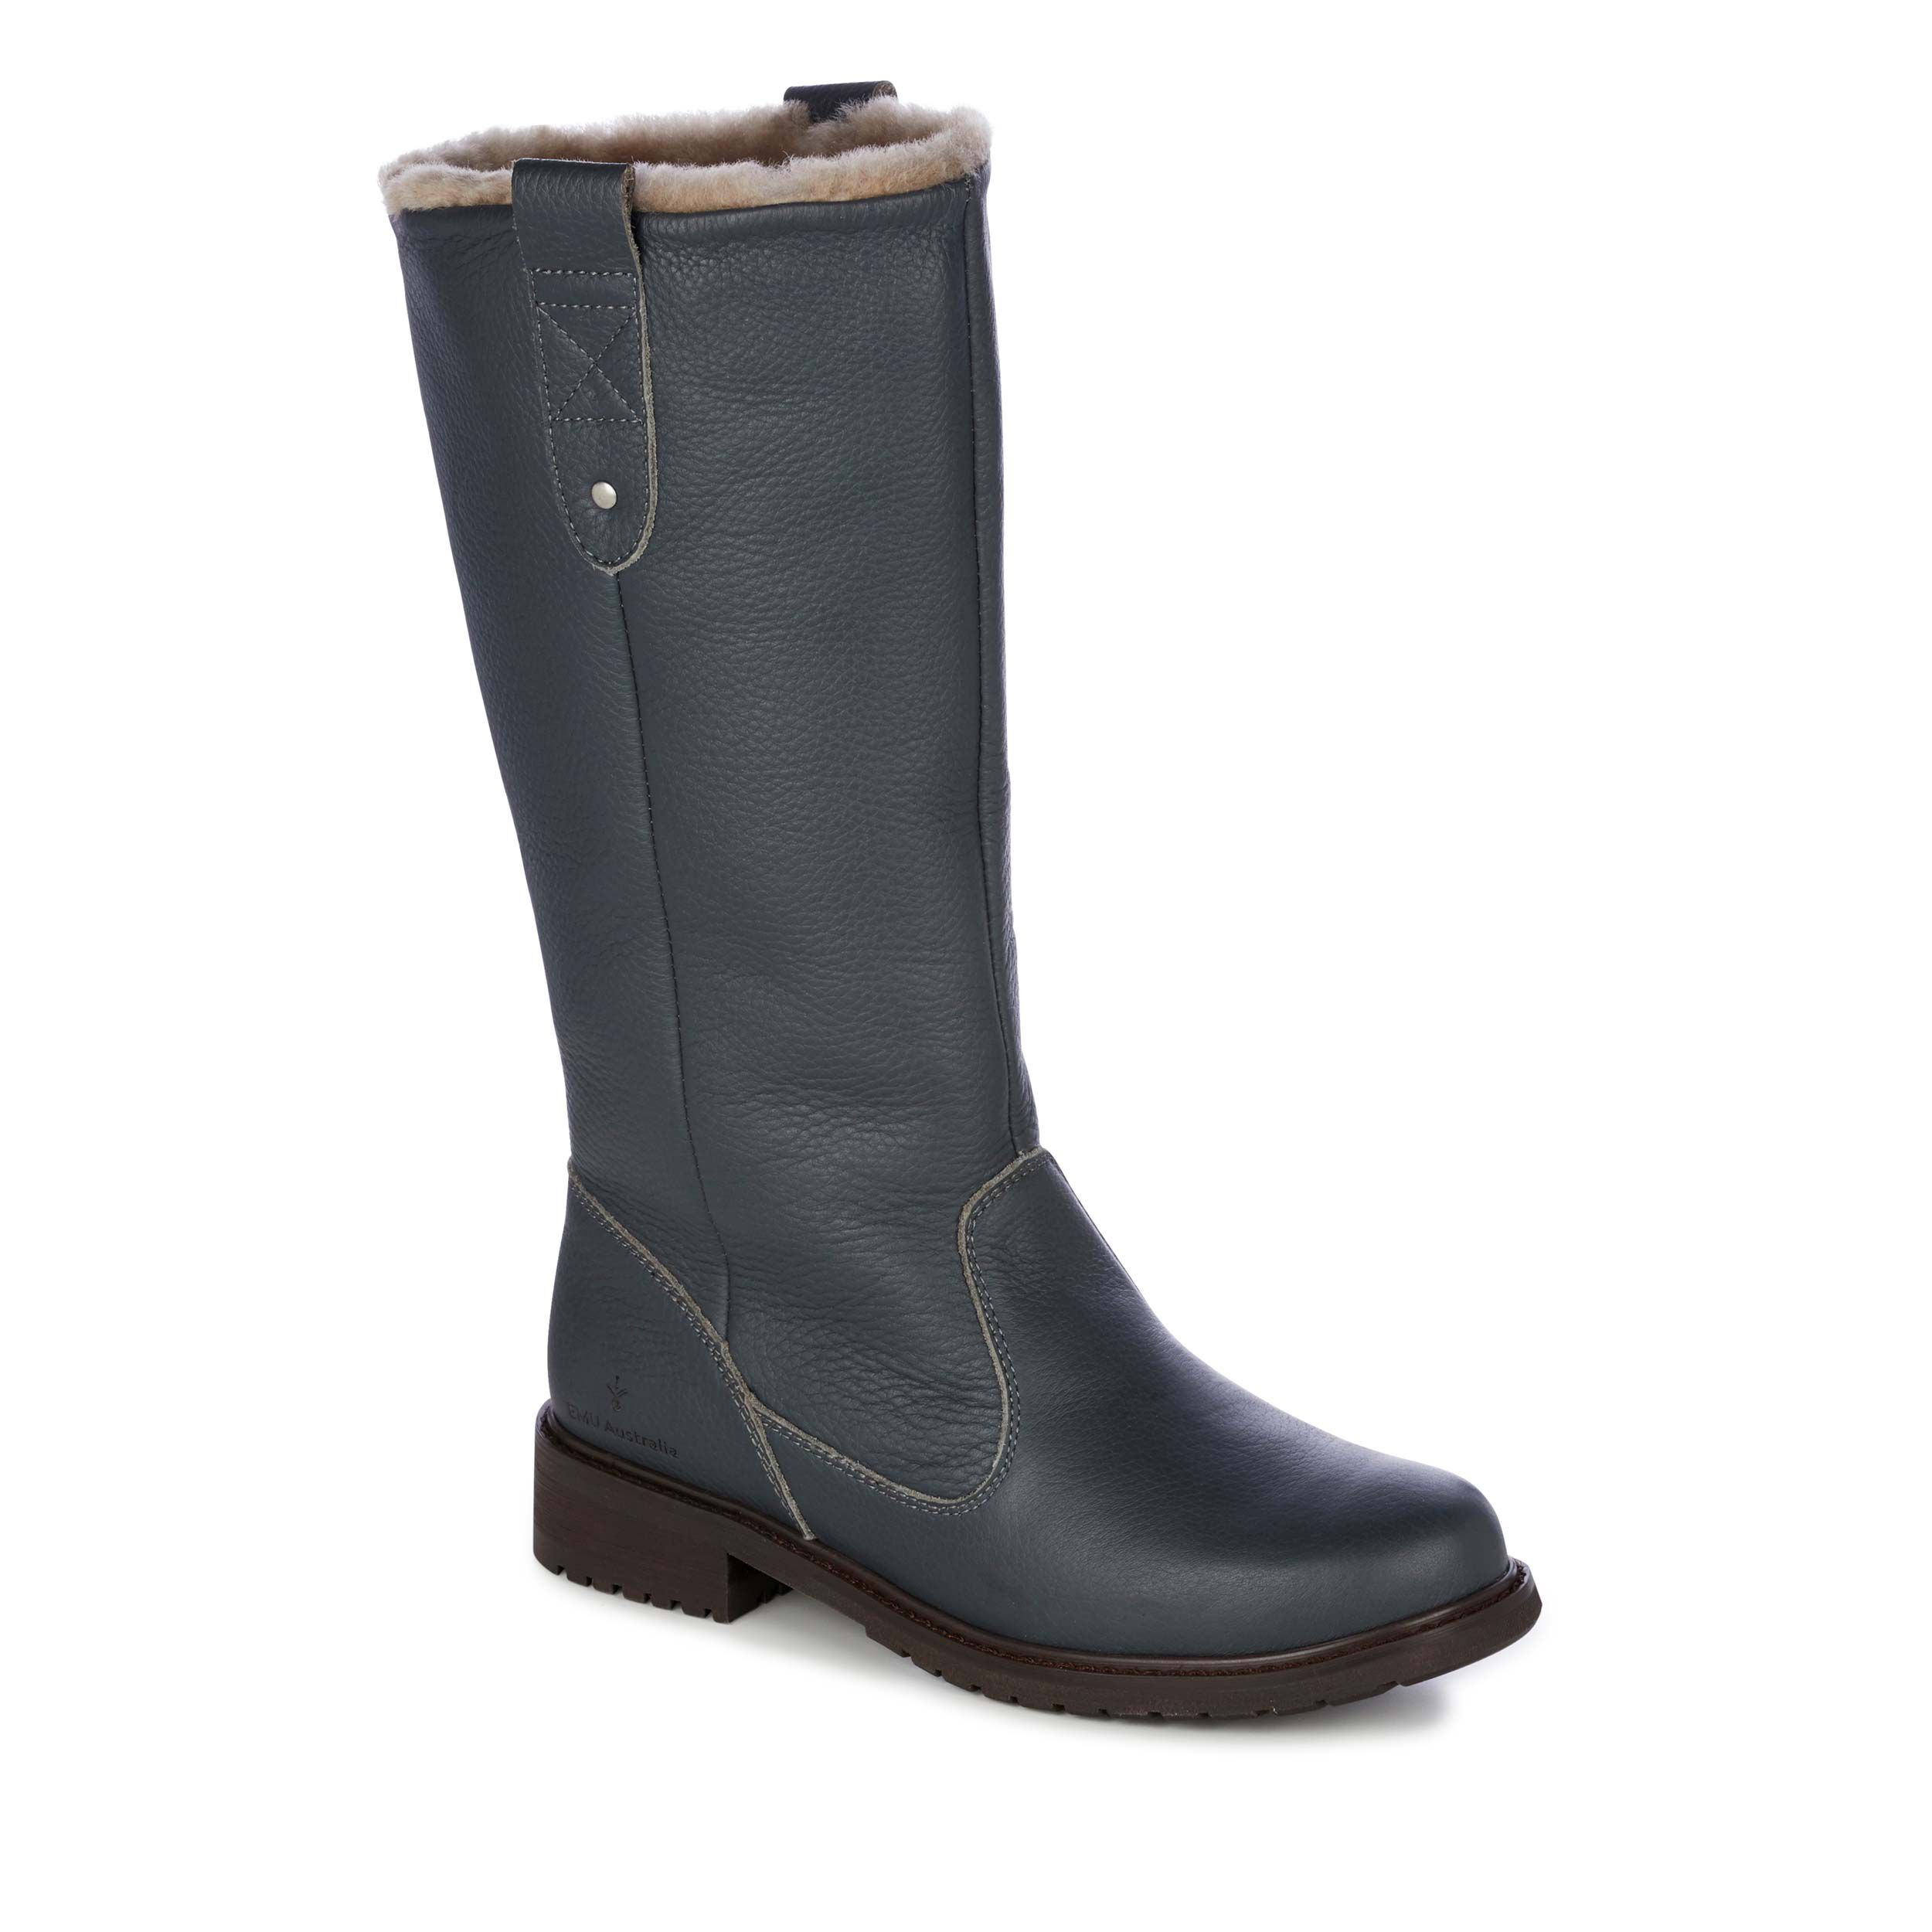 Shale Womens Cow Leather Boot- EMU